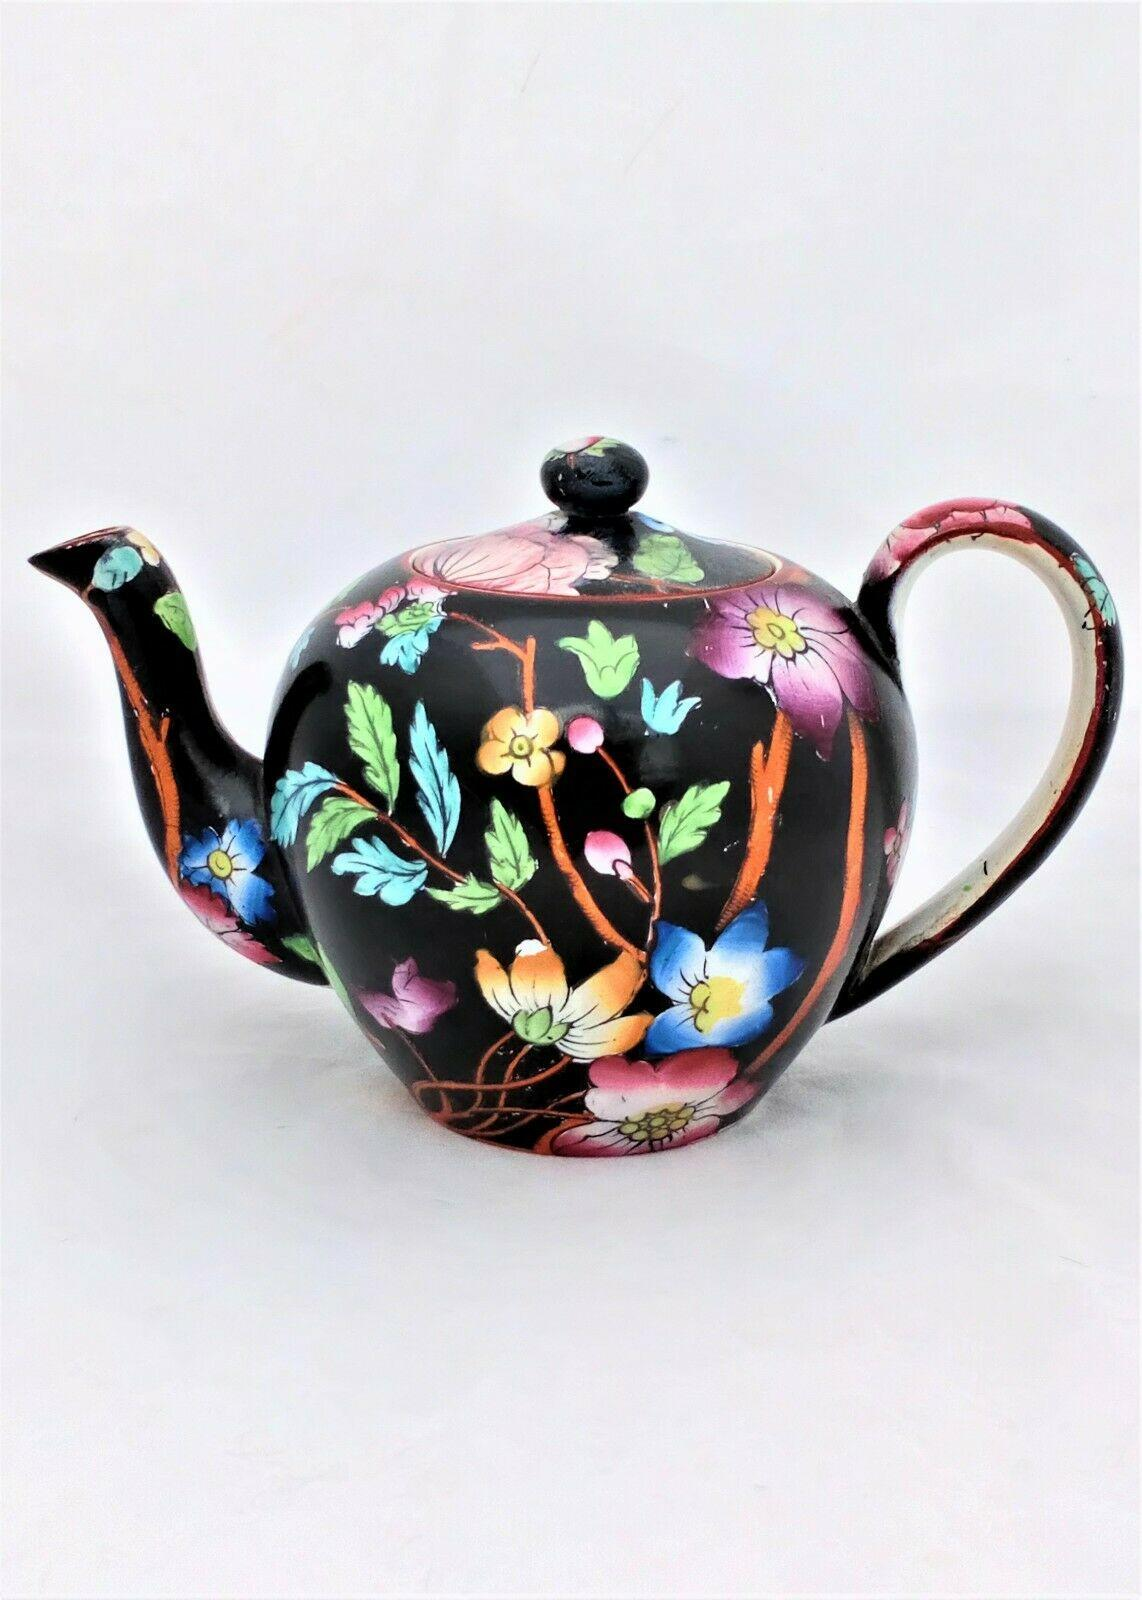 Antique Bachelor Teapot Transferware Black Ground Floral Sprays Livonia c 1850